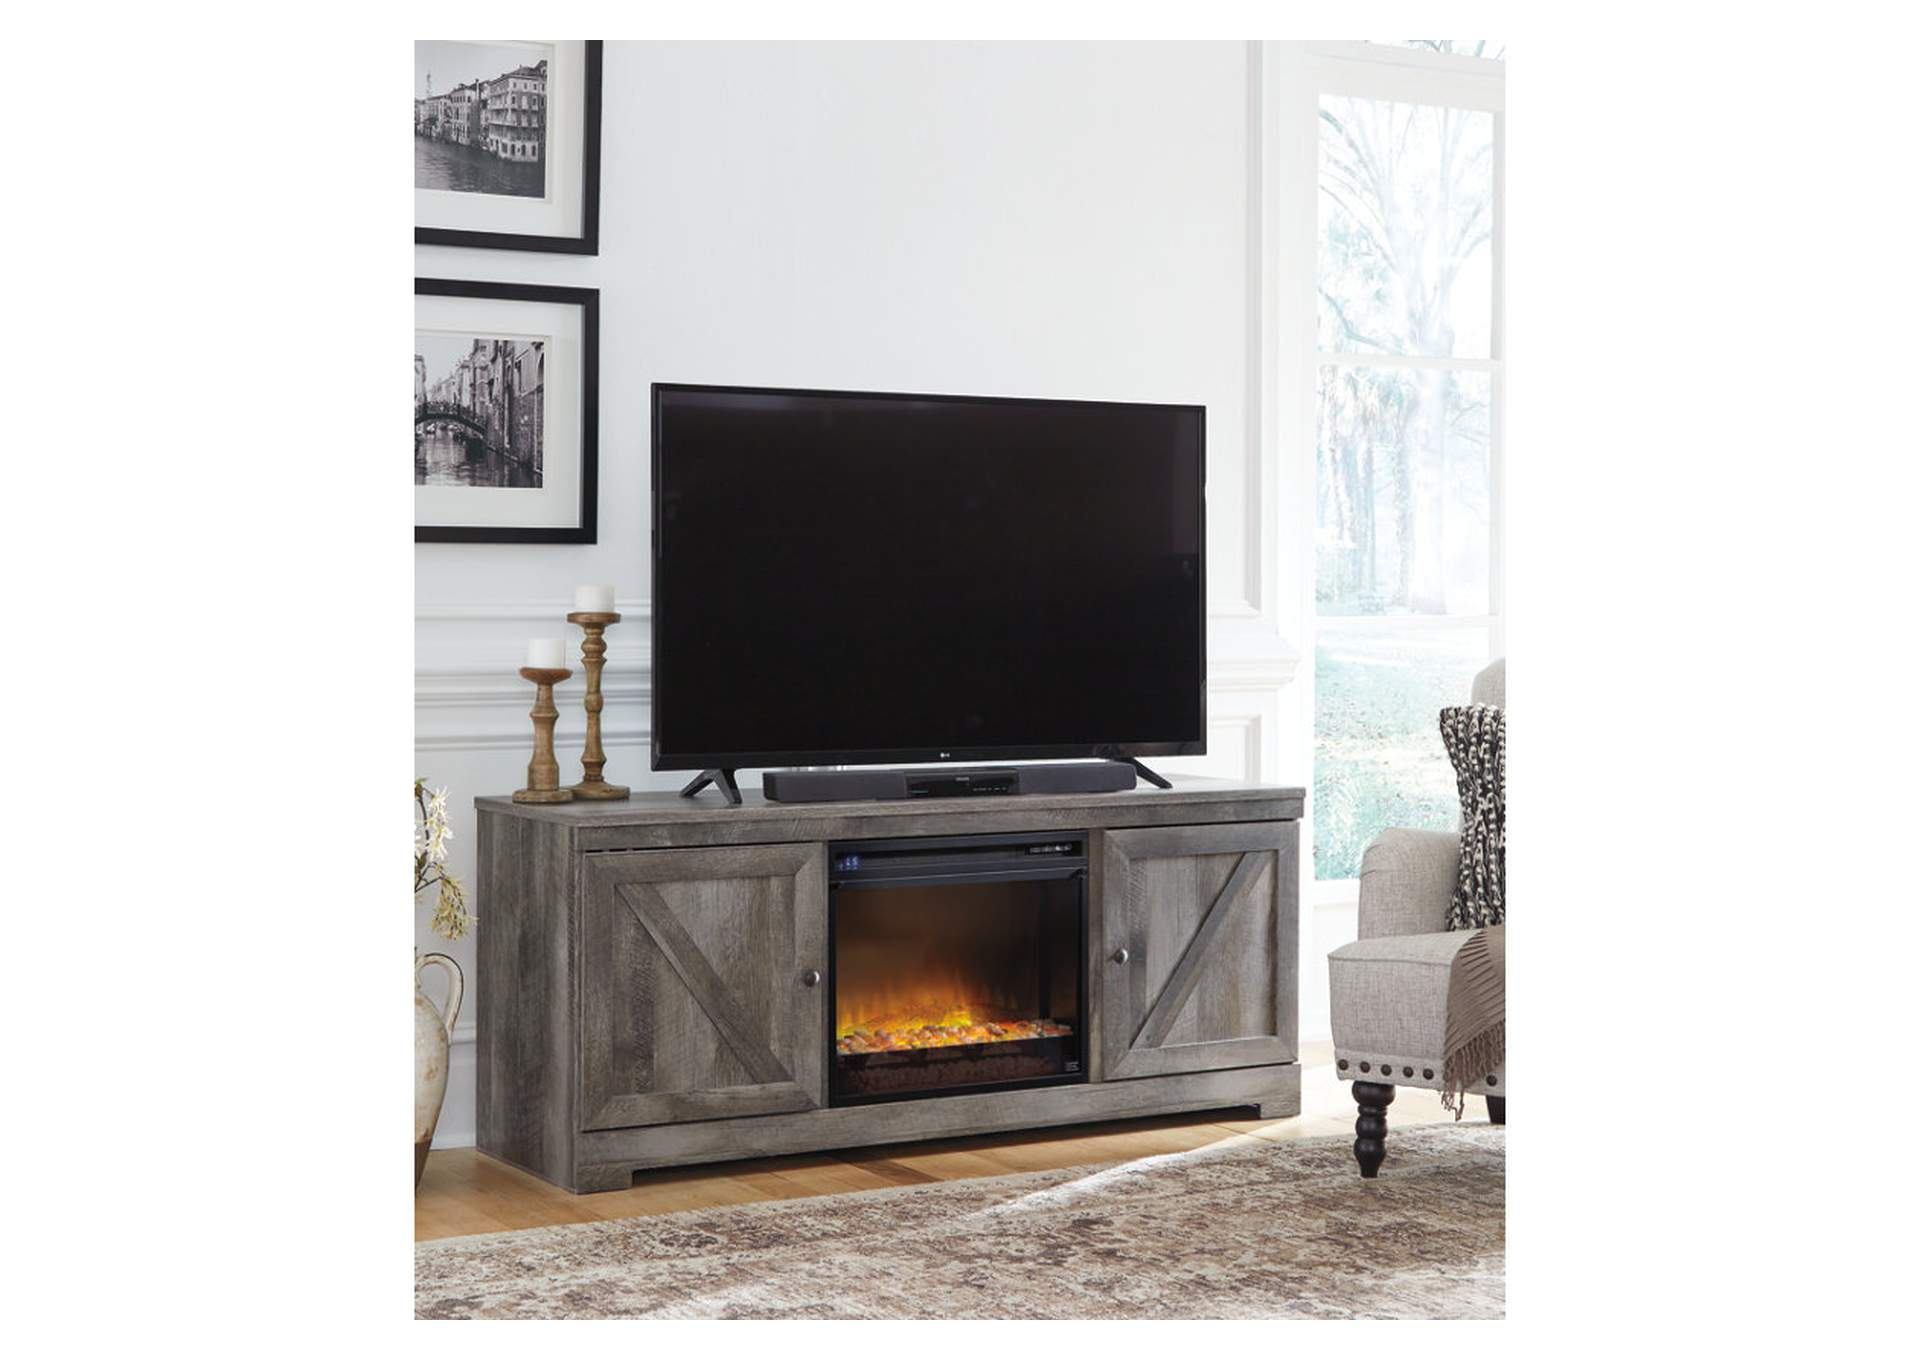 Wynnlow Gray LG TV Stand w/Black Glass/Stone Fireplace Insert,Signature Design By Ashley